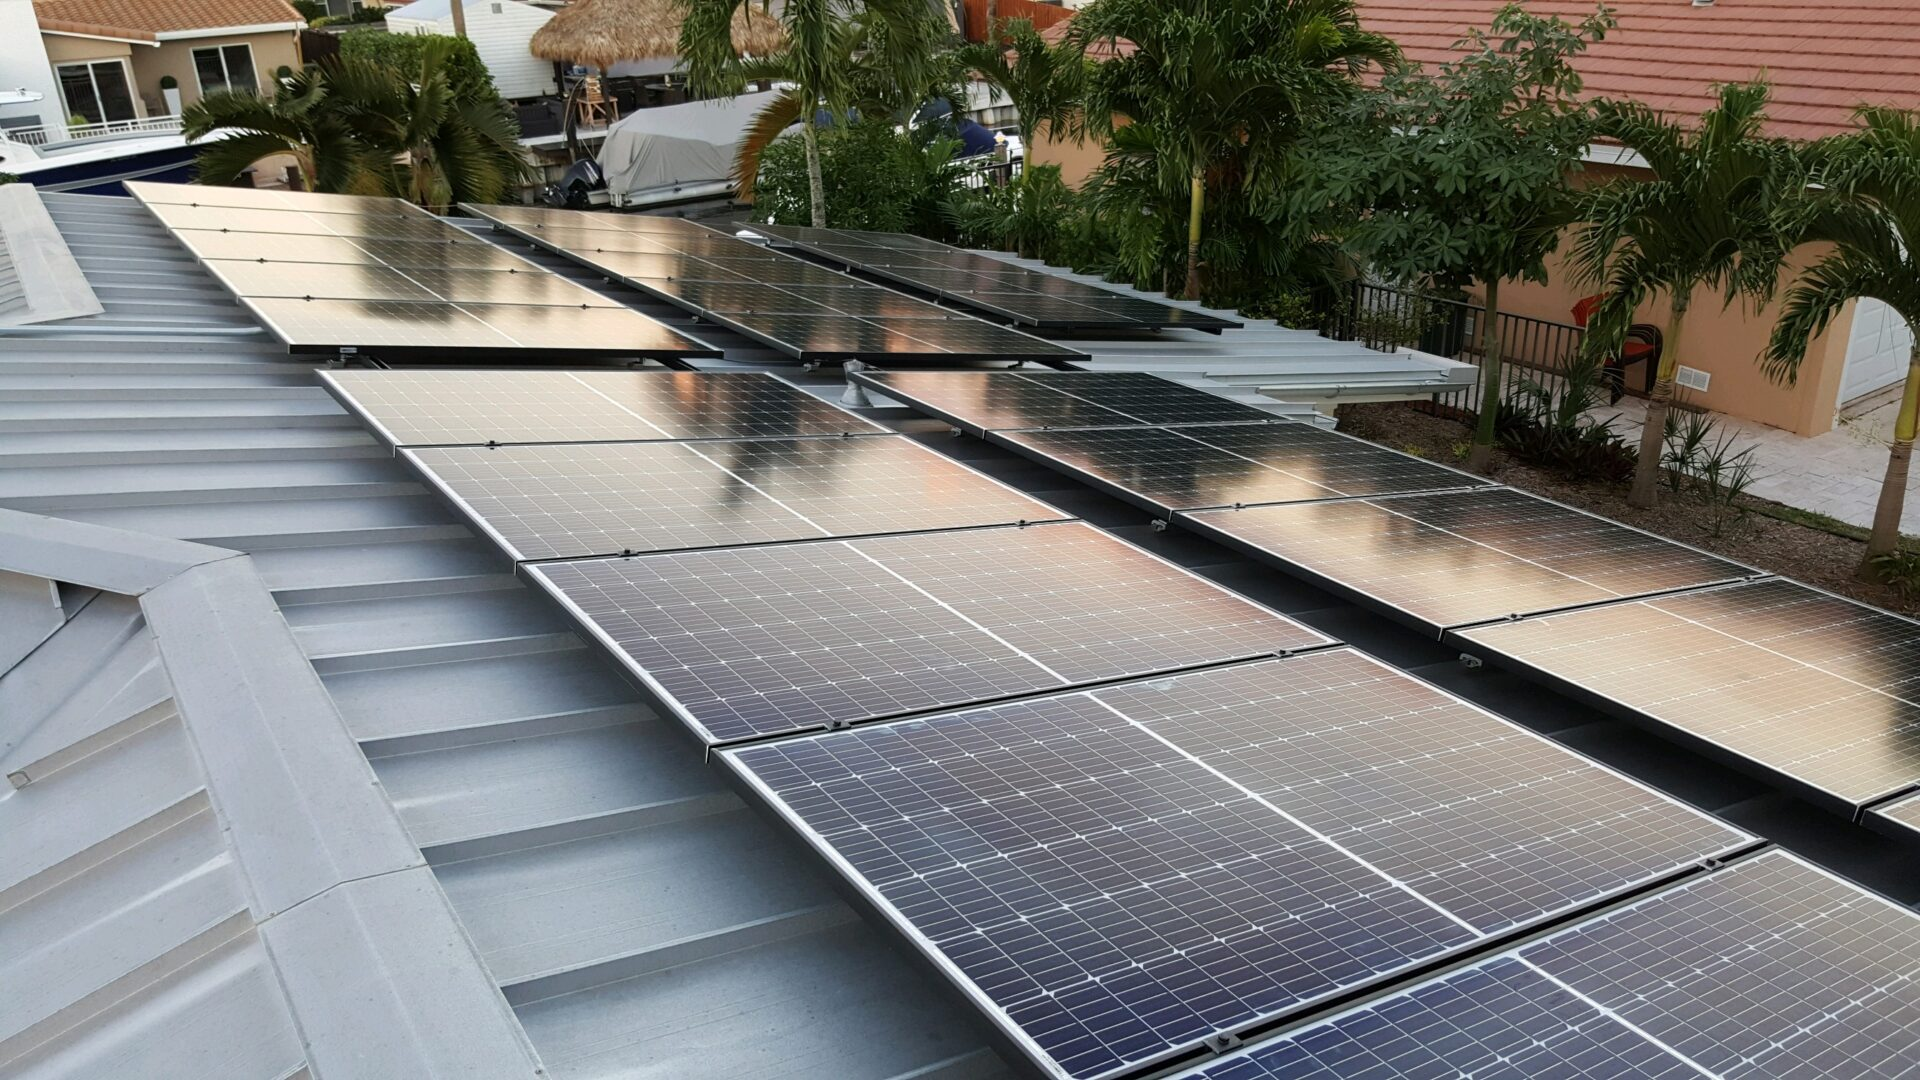 9.6kW Grid-Tied System on Standing Seam Roof - Plantation, FL